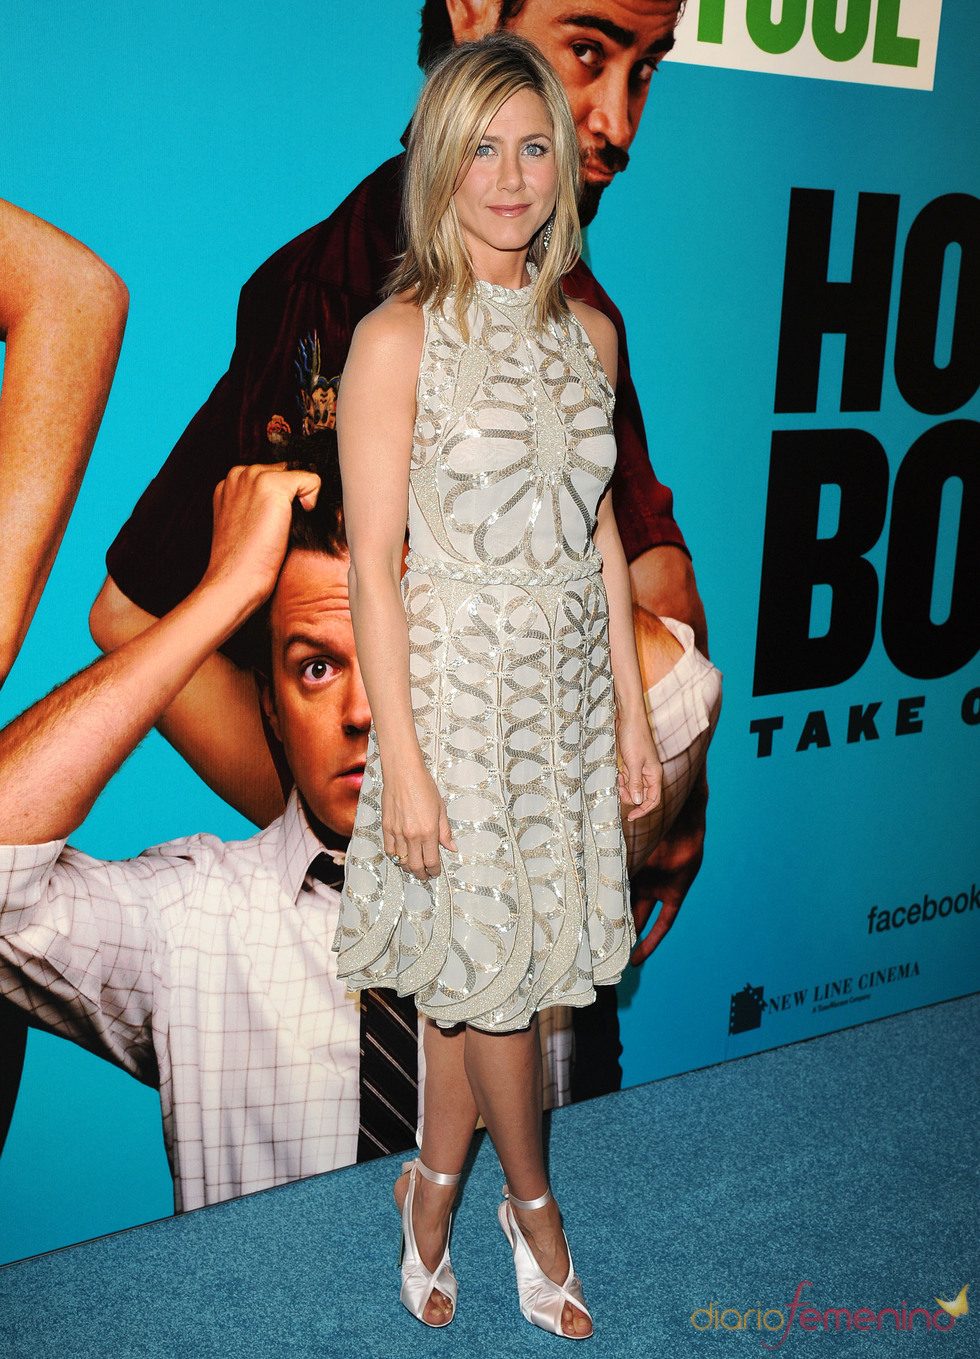 Jennifer Aniston en el estreno de 'Horrible Bosses' en Londres